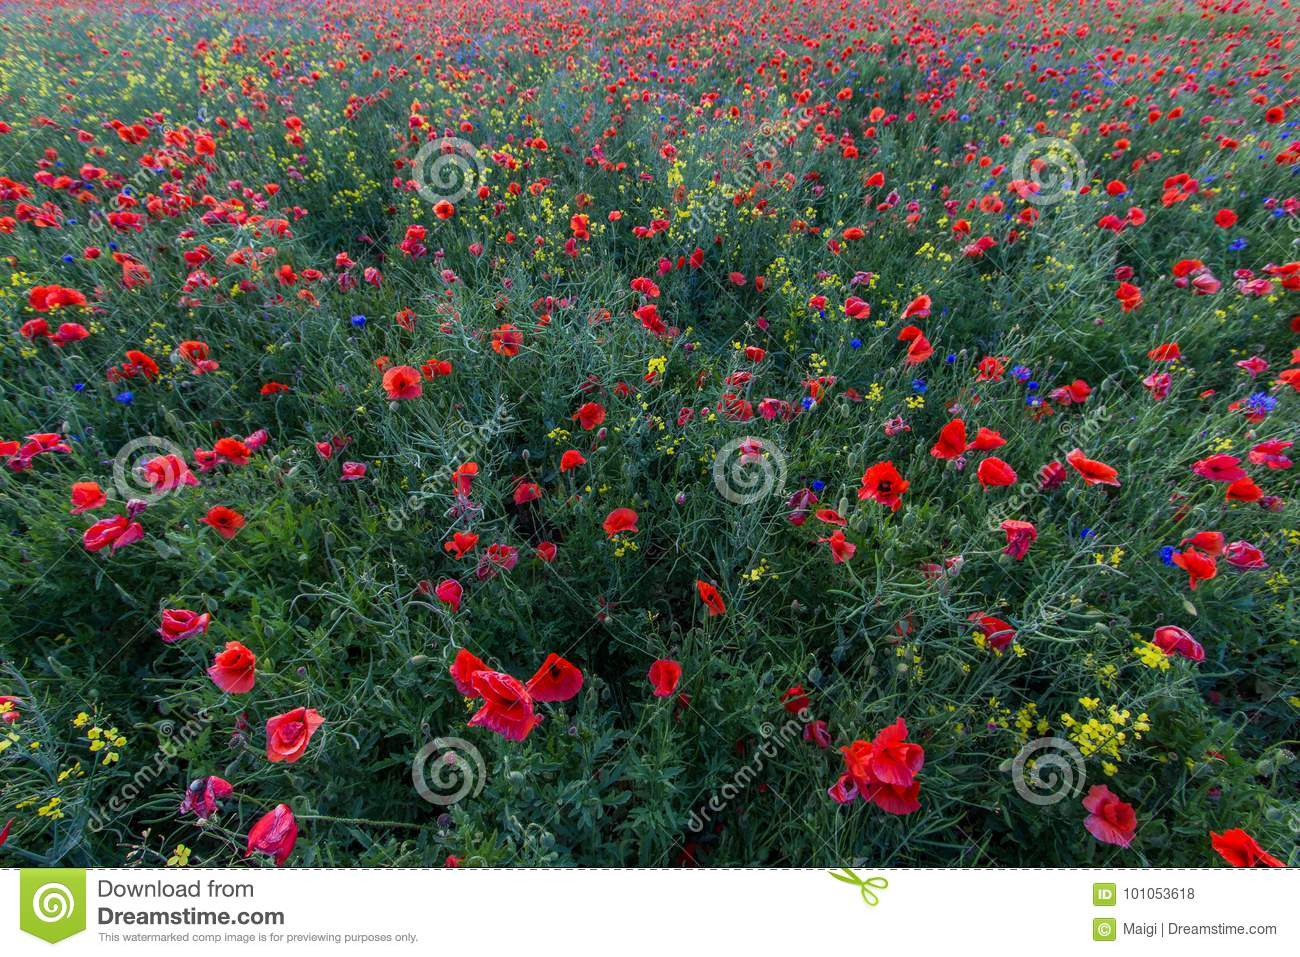 Download In The Middle Of The Poppy Field Stock Photo - Image of middle, centaurea: 101053618